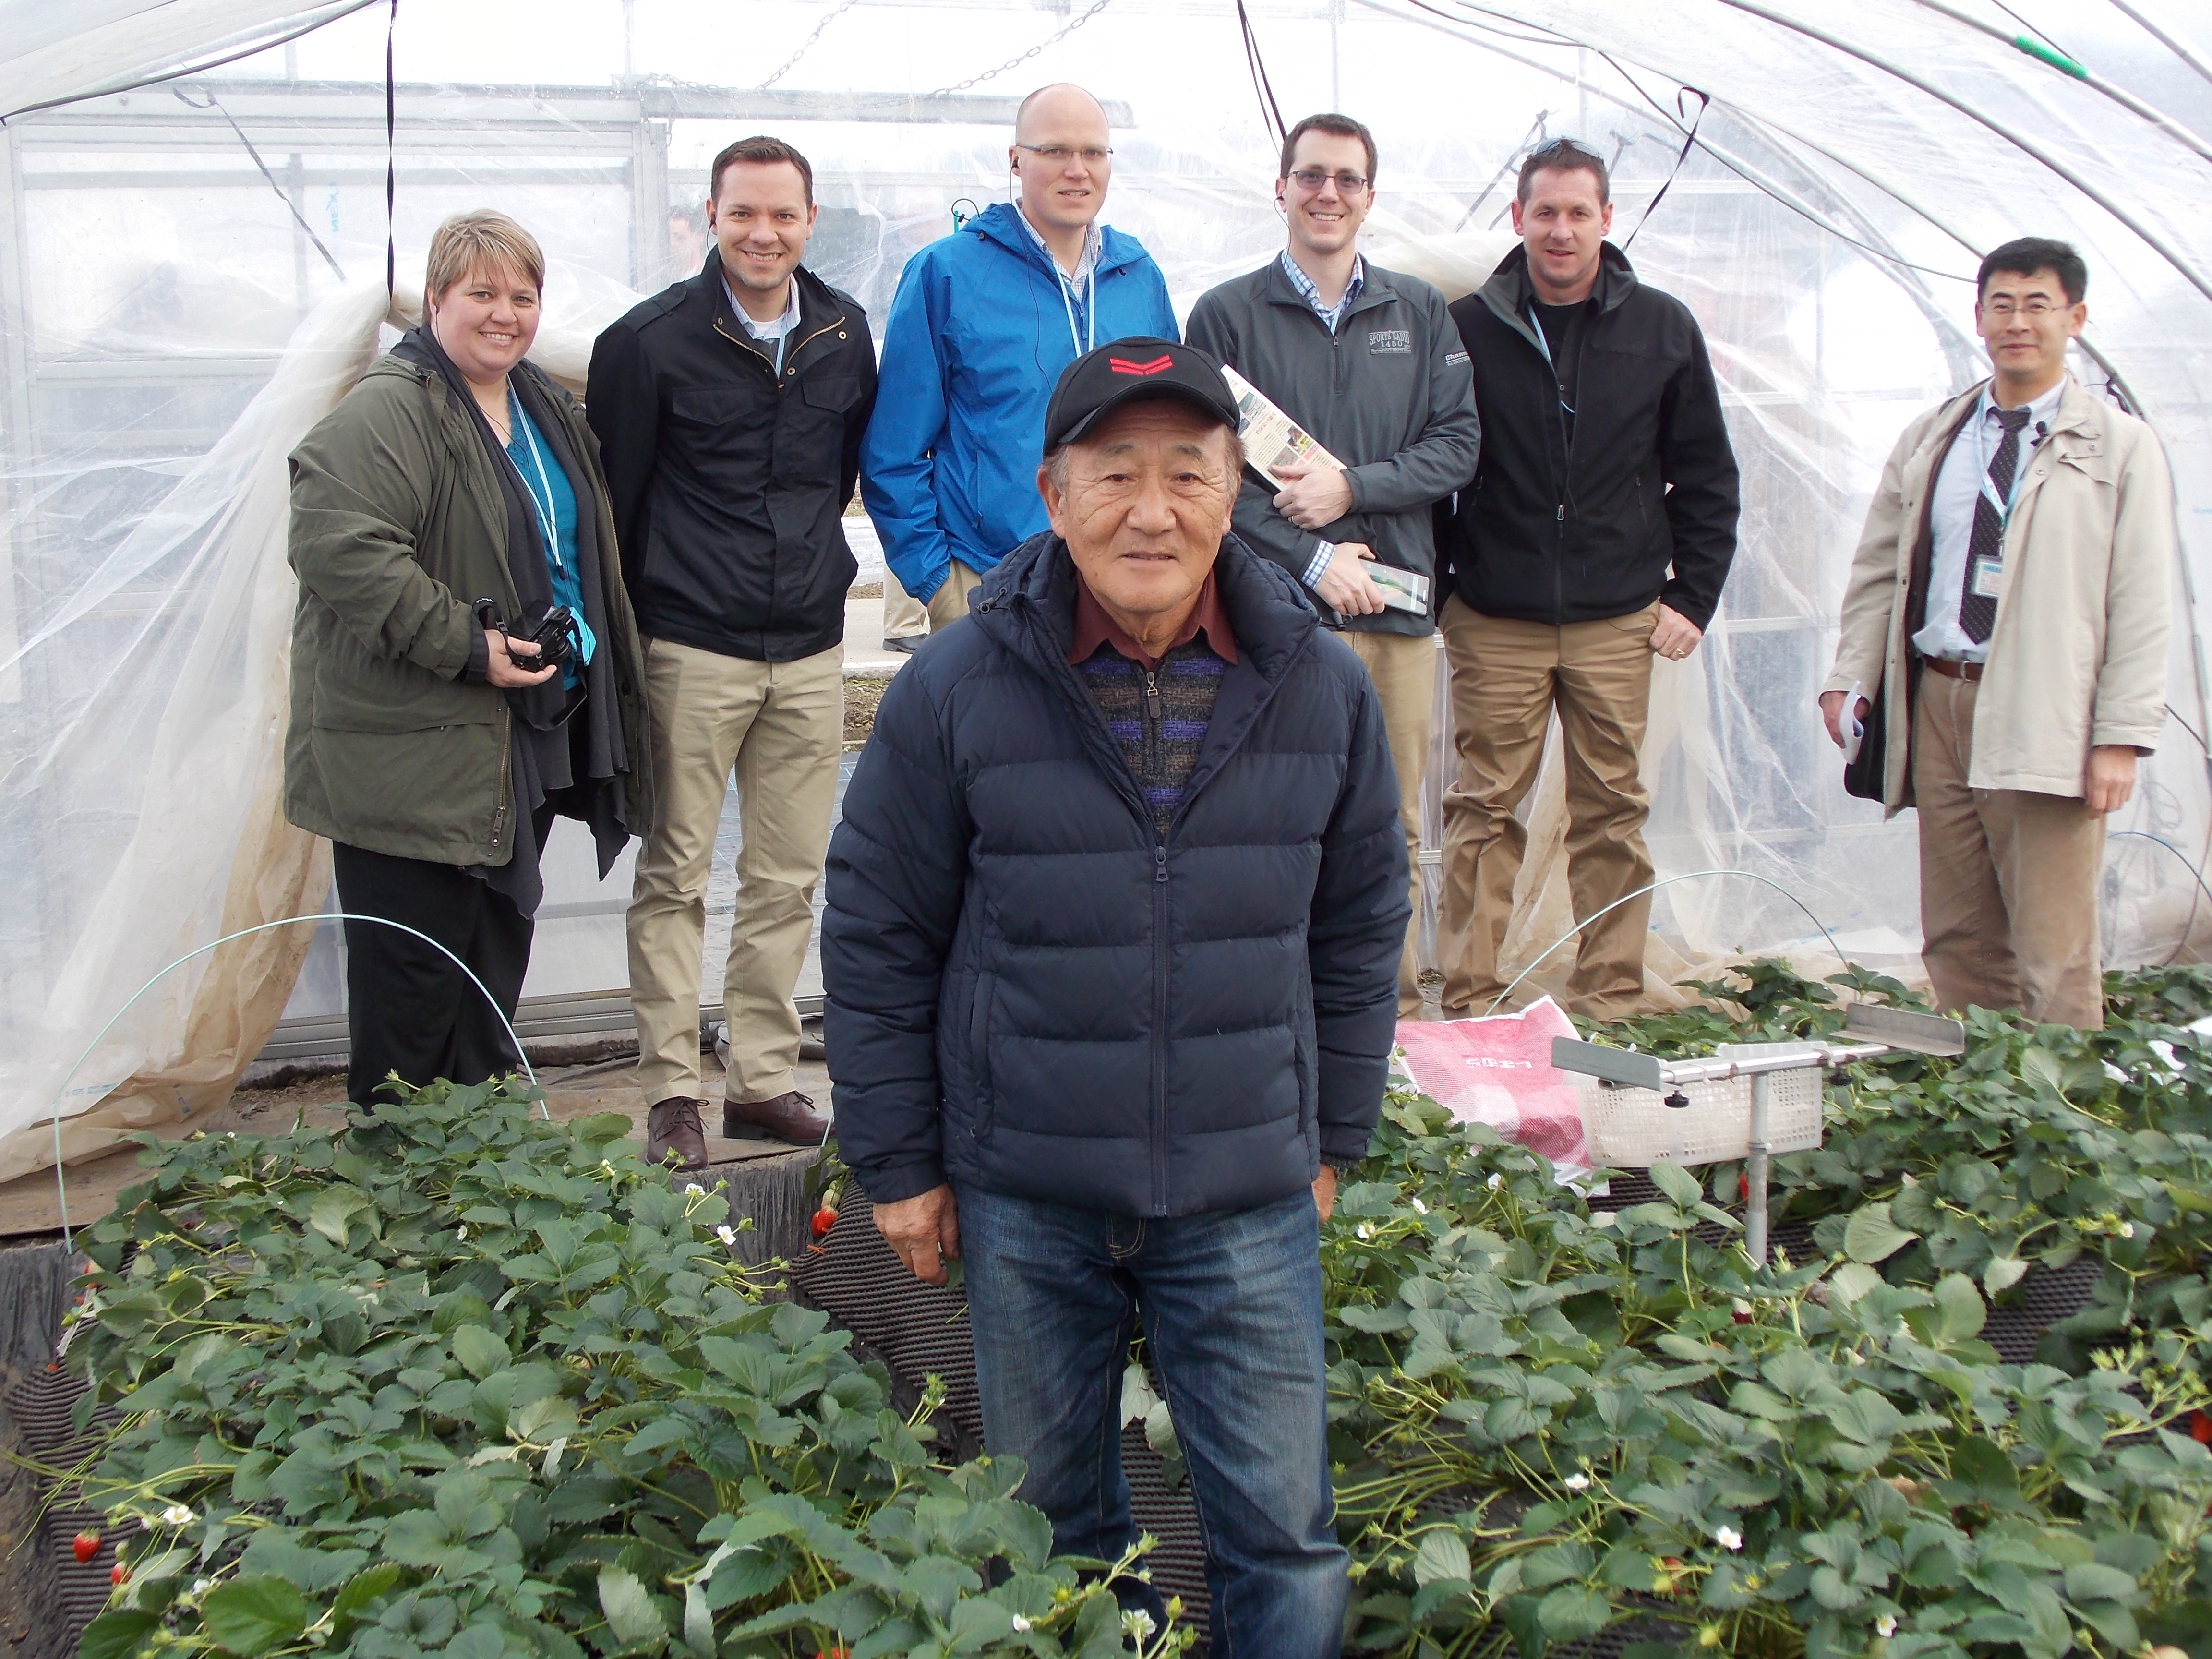 Several members of the Class of 2016 pose for a photo with Mr. Nihei in one of his greenhouses.